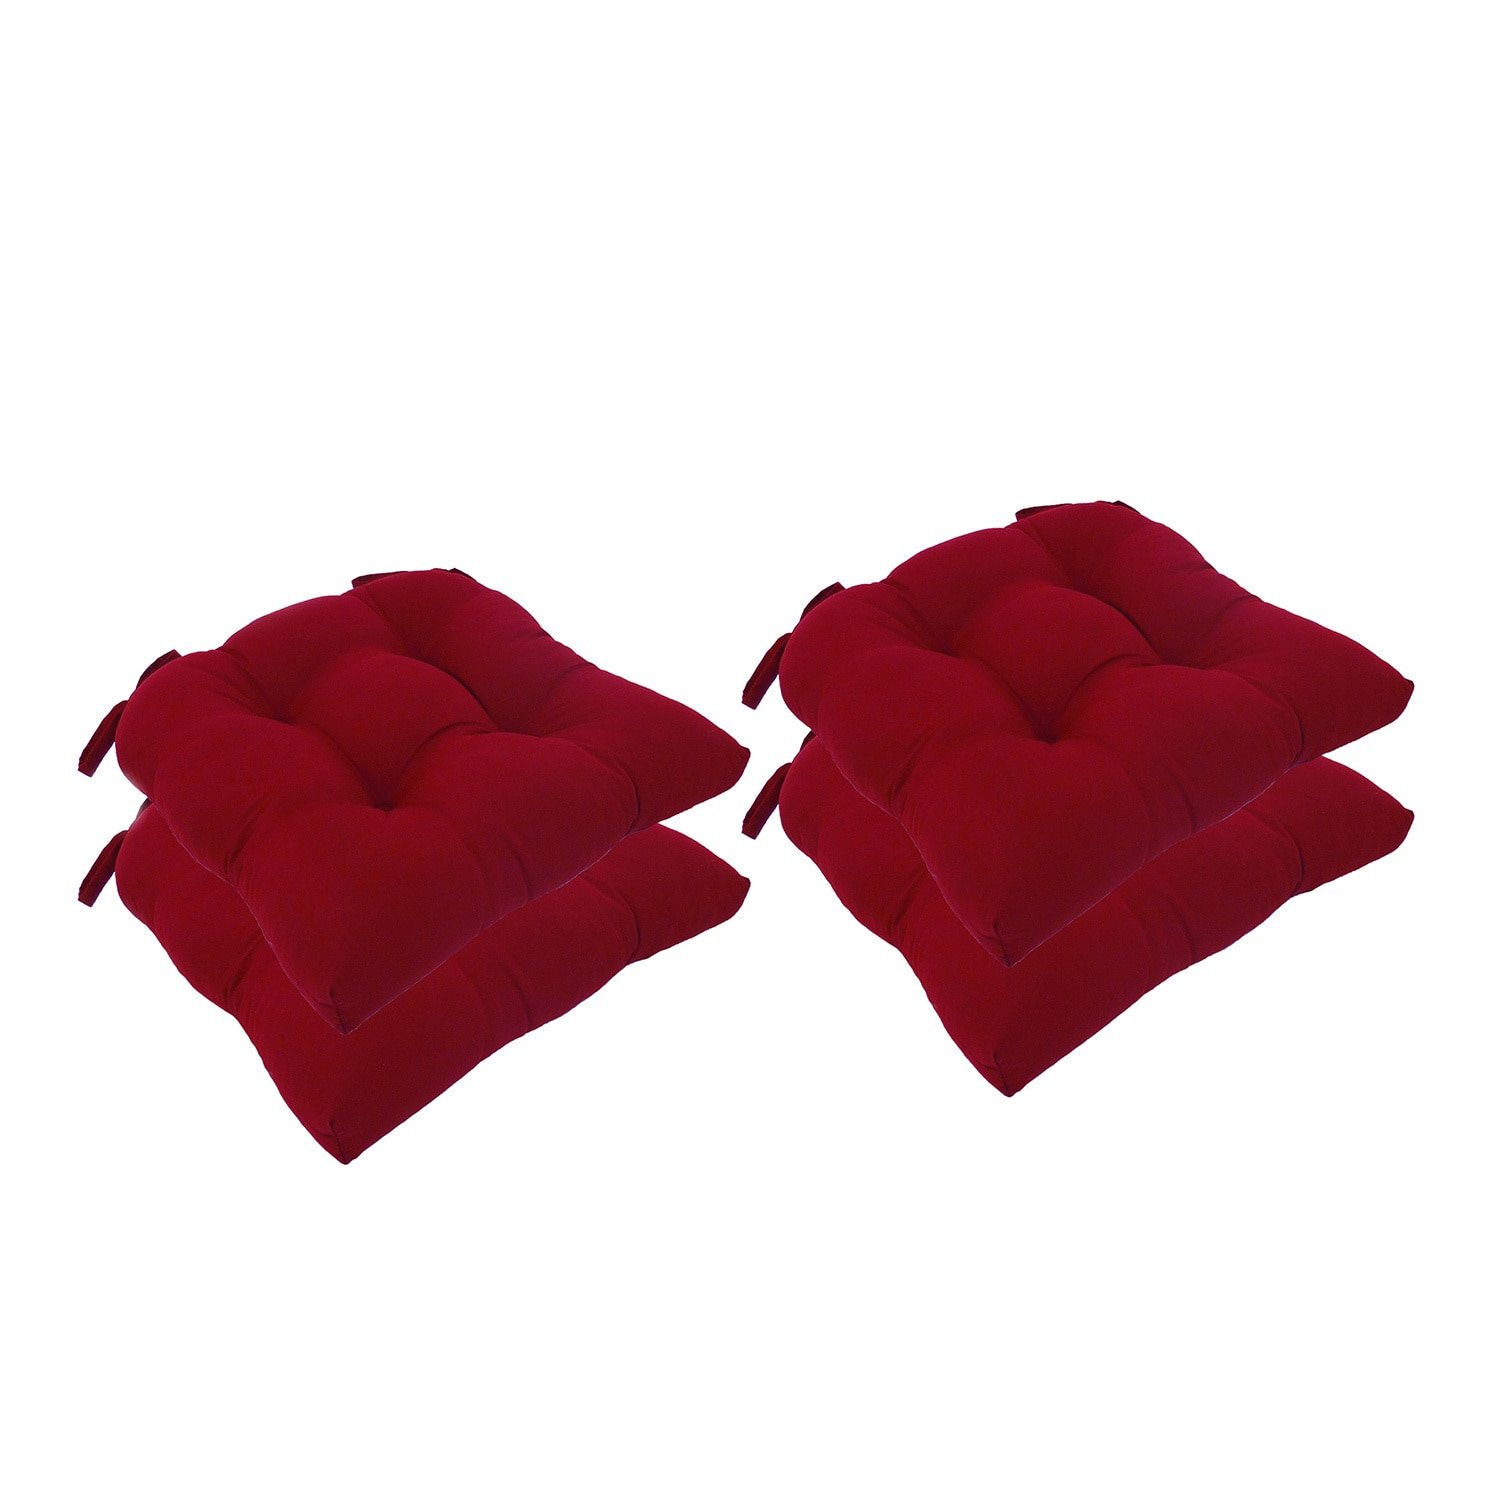 Essentials Micro Fiber Set of Four (4) Chair Pad Seat Cushions Comfortable, Indoor, Dining Living Room, Kitchen, Office, Den, Washable, Fabric Ties, Barn Red, 4 Piece